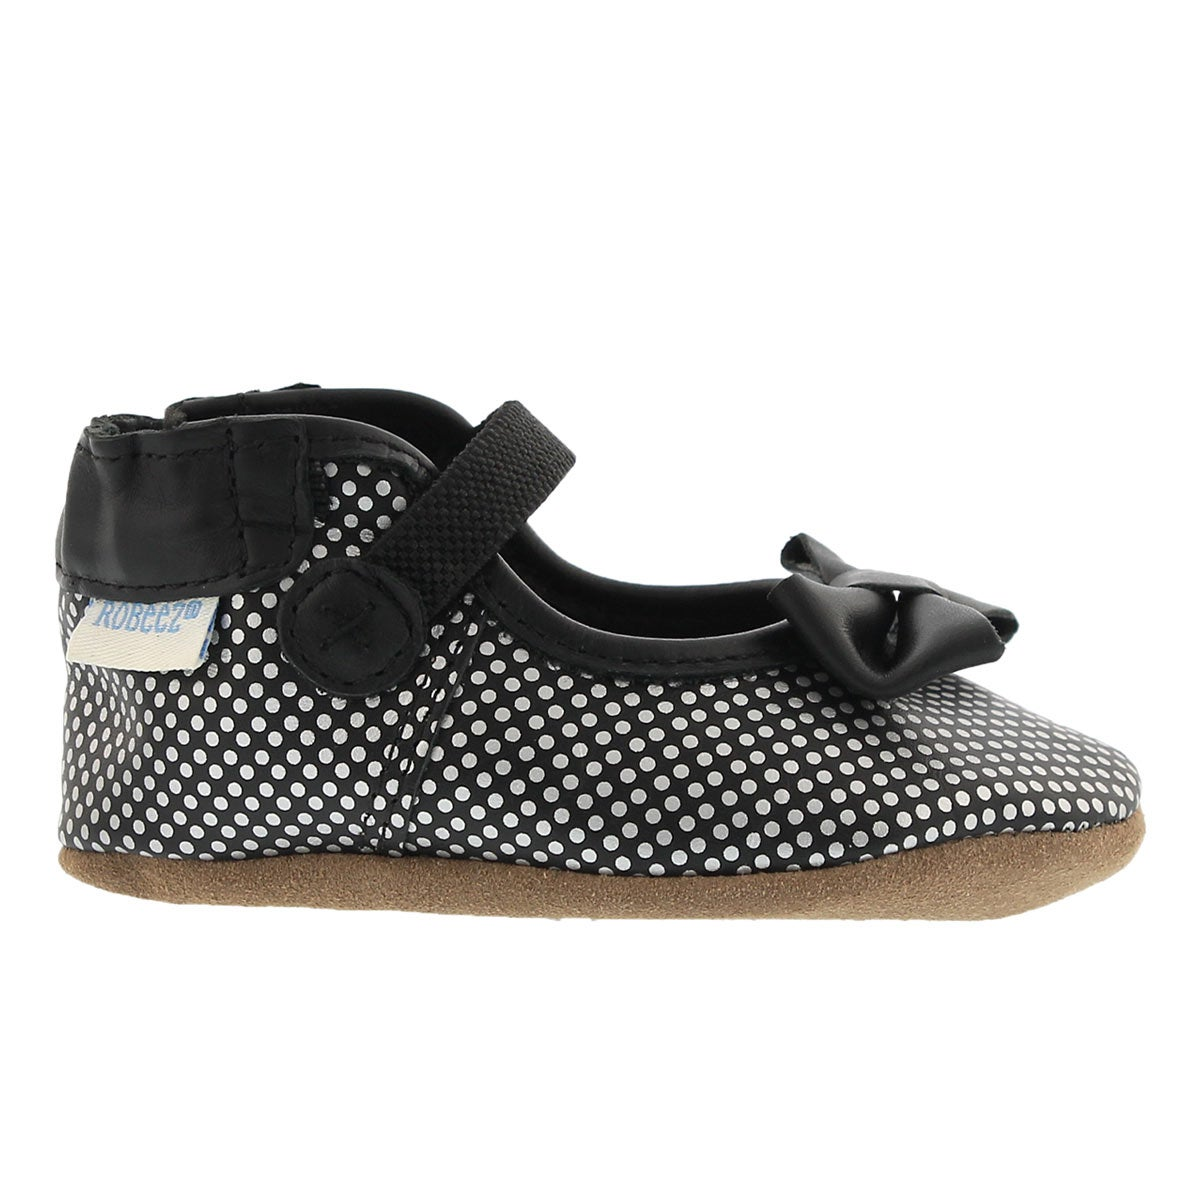 Infs Spotted Shannon MJ blk slipper